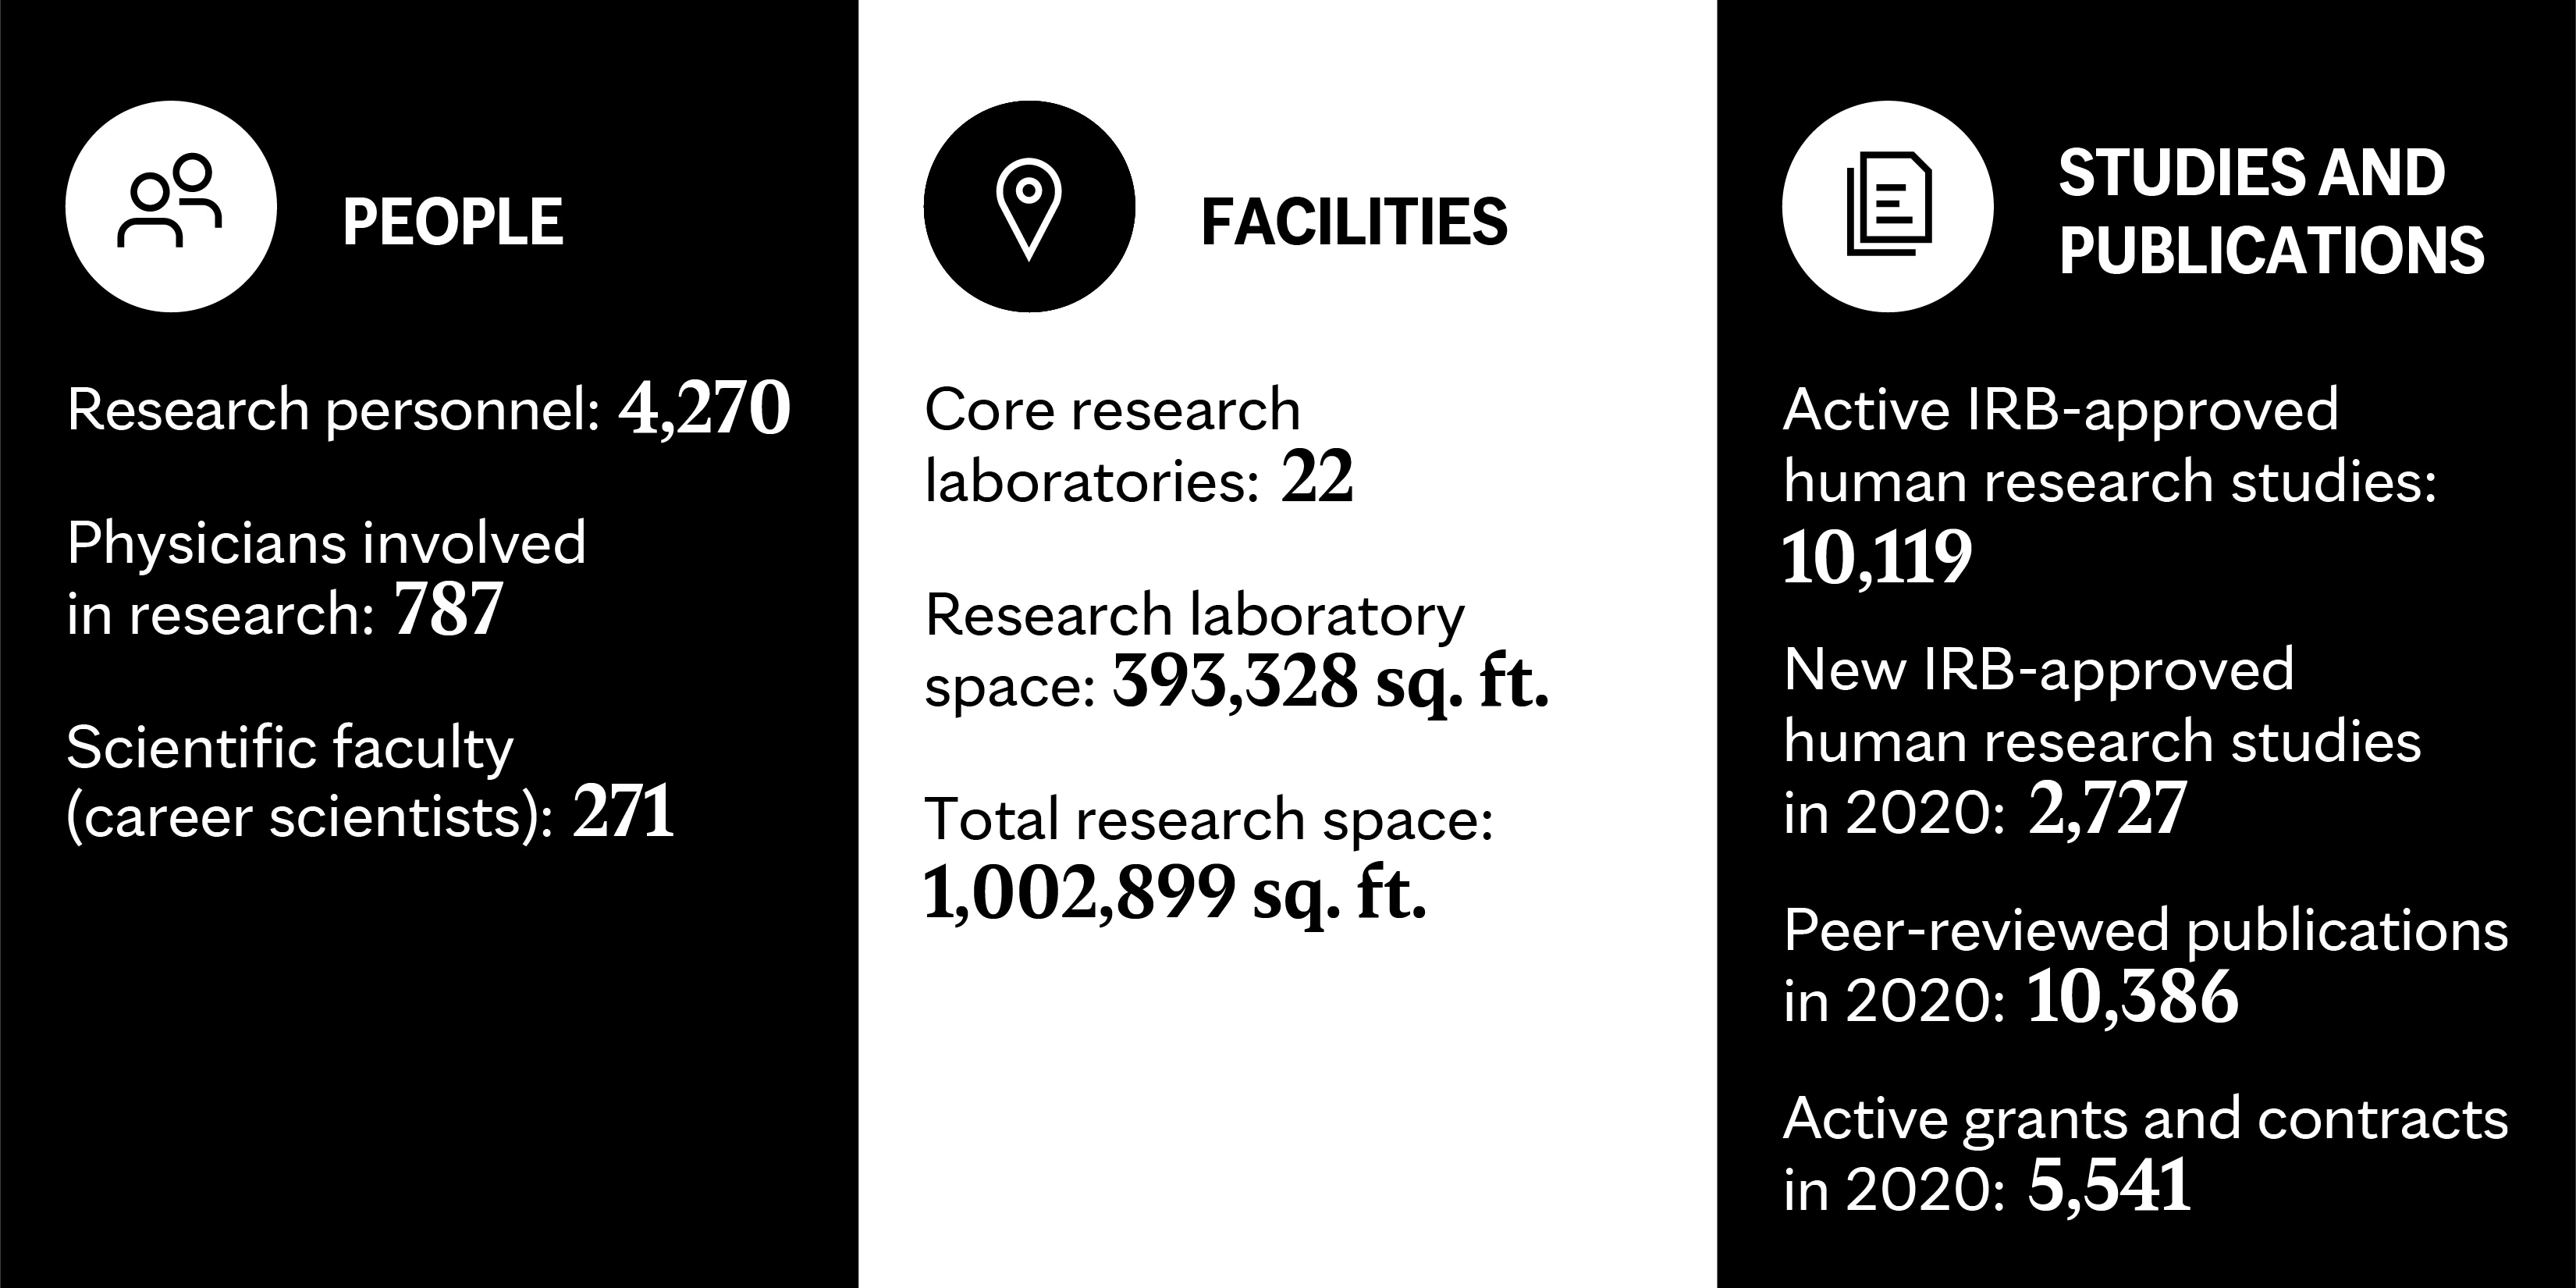 Mayo Clinic statistics about research staff, faculty, facilities and space, studies, publications, and grants